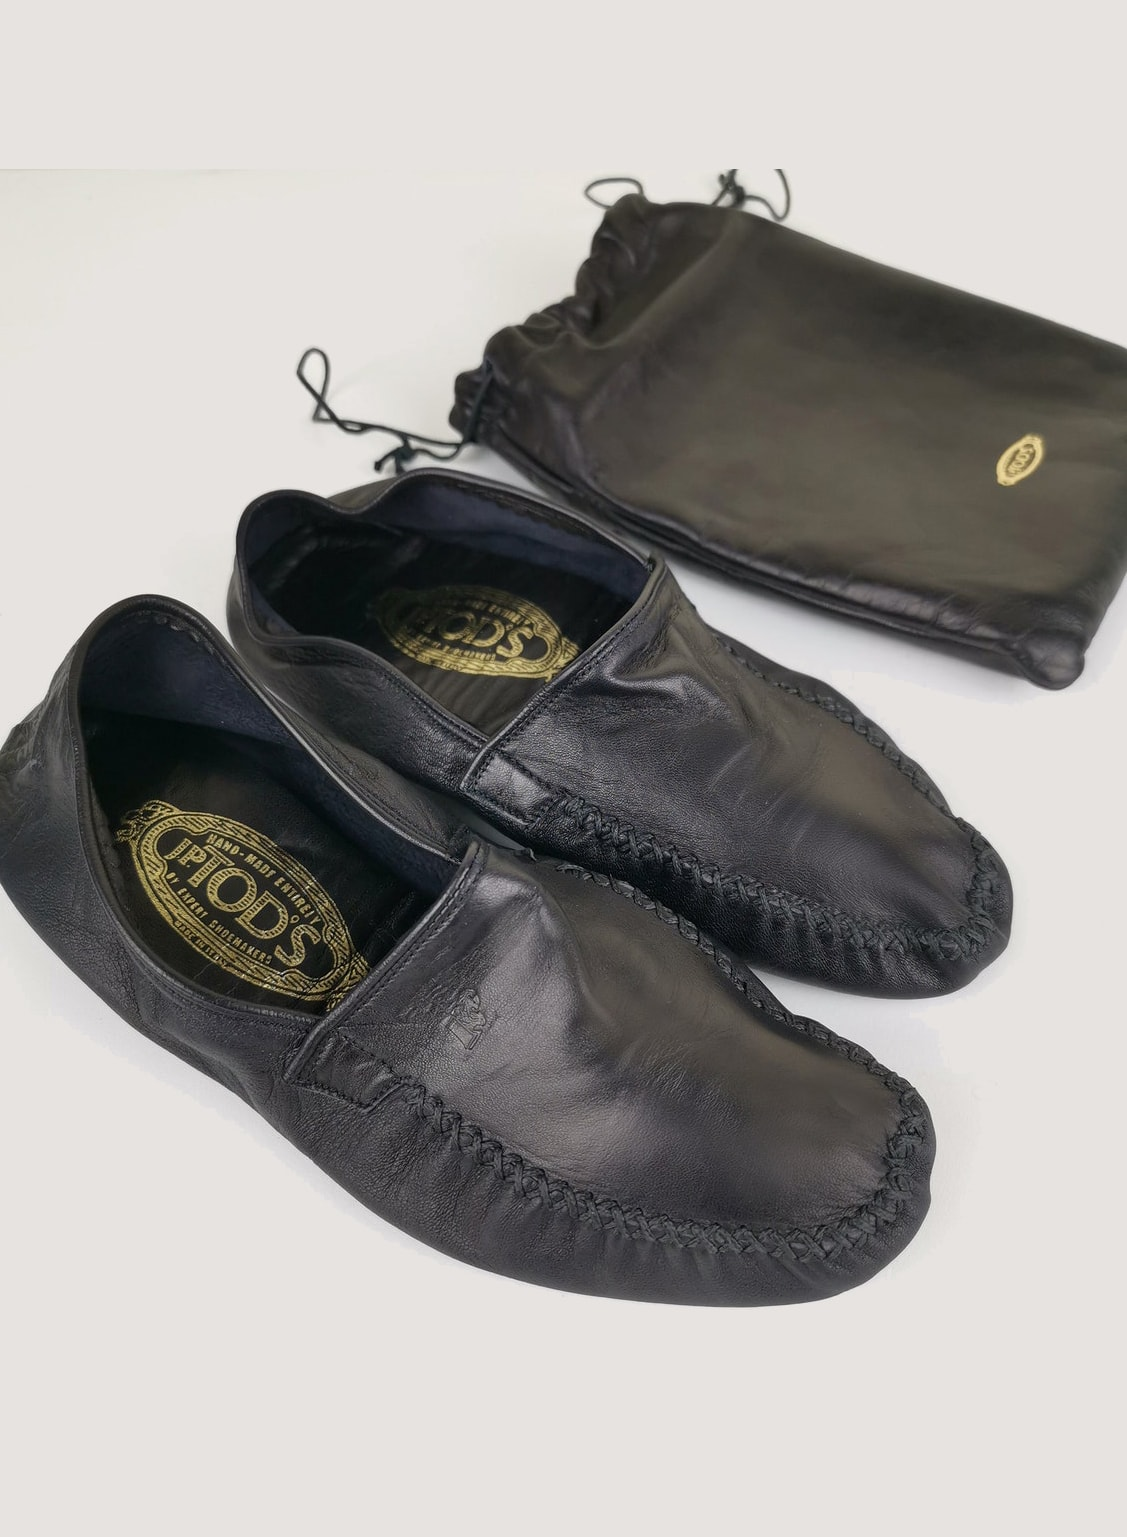 TODS travel slippers, foldable in butter-soft black leather, size 37, US 7, with leather bag, vintage, very good condition